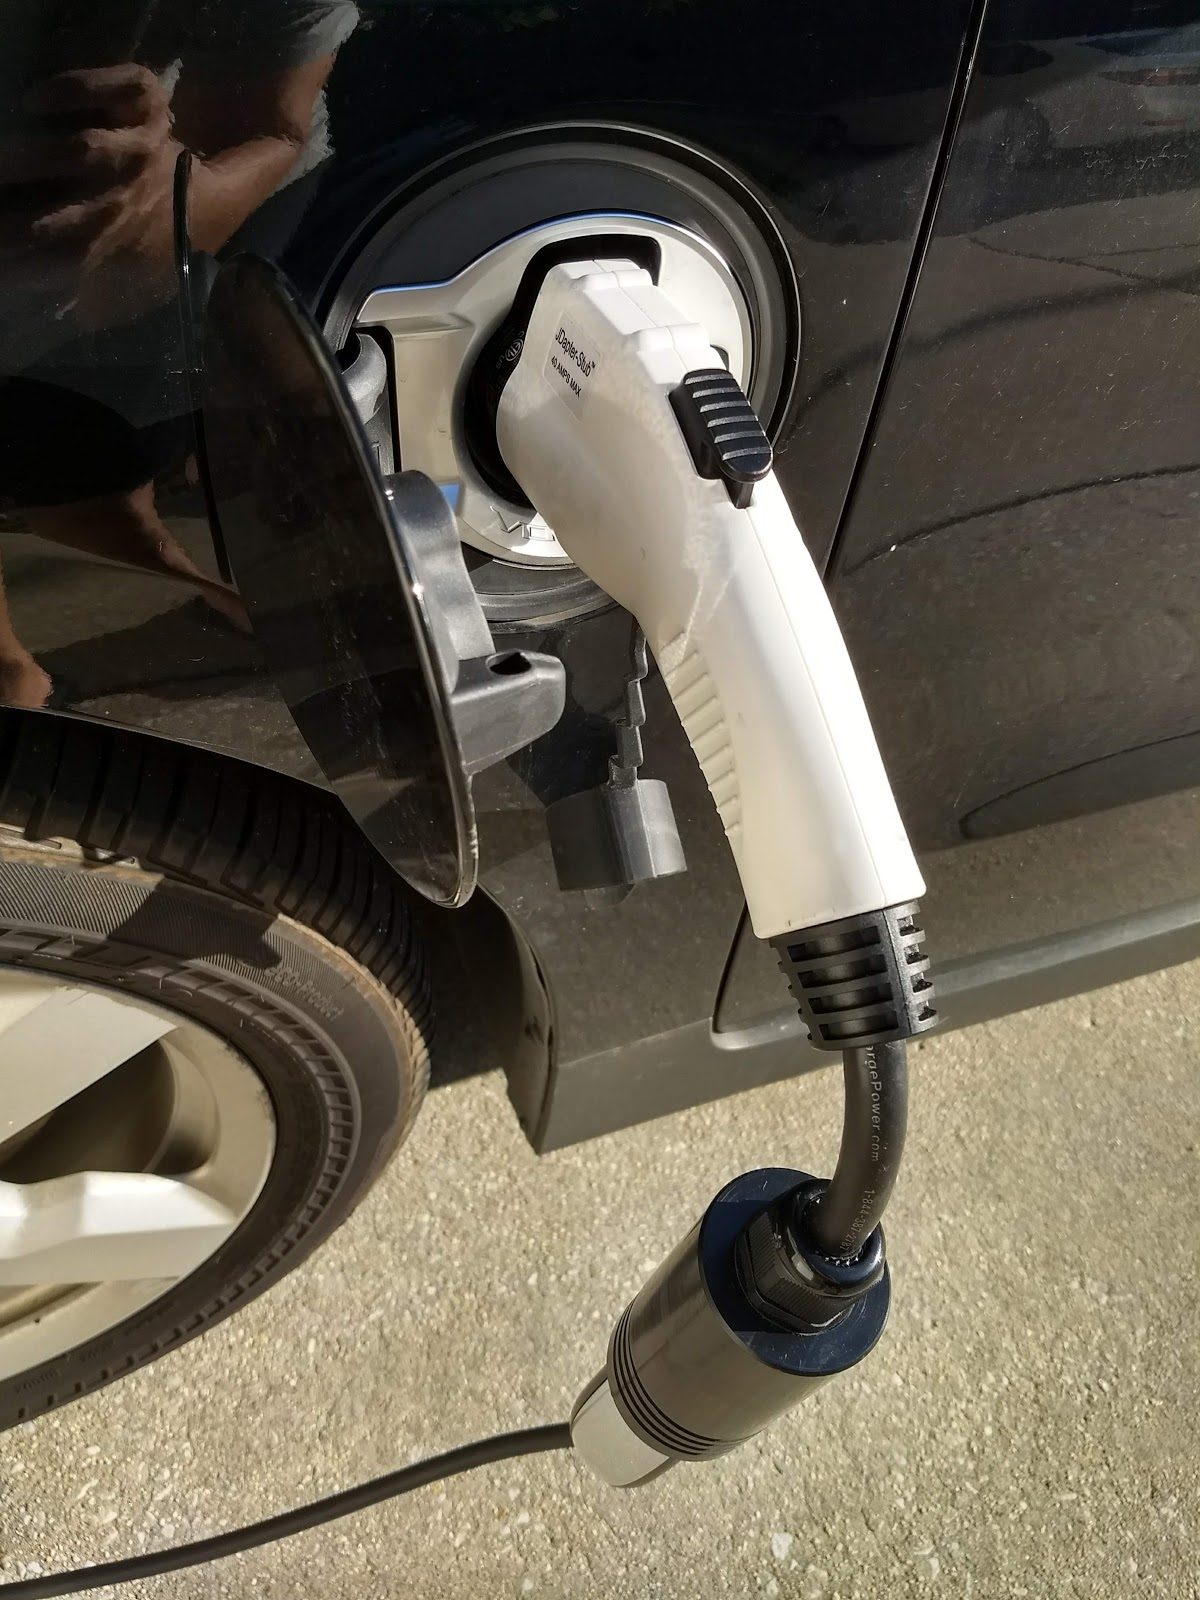 bro05's blog: Best Value Charging Station For a Non-Tesla ...